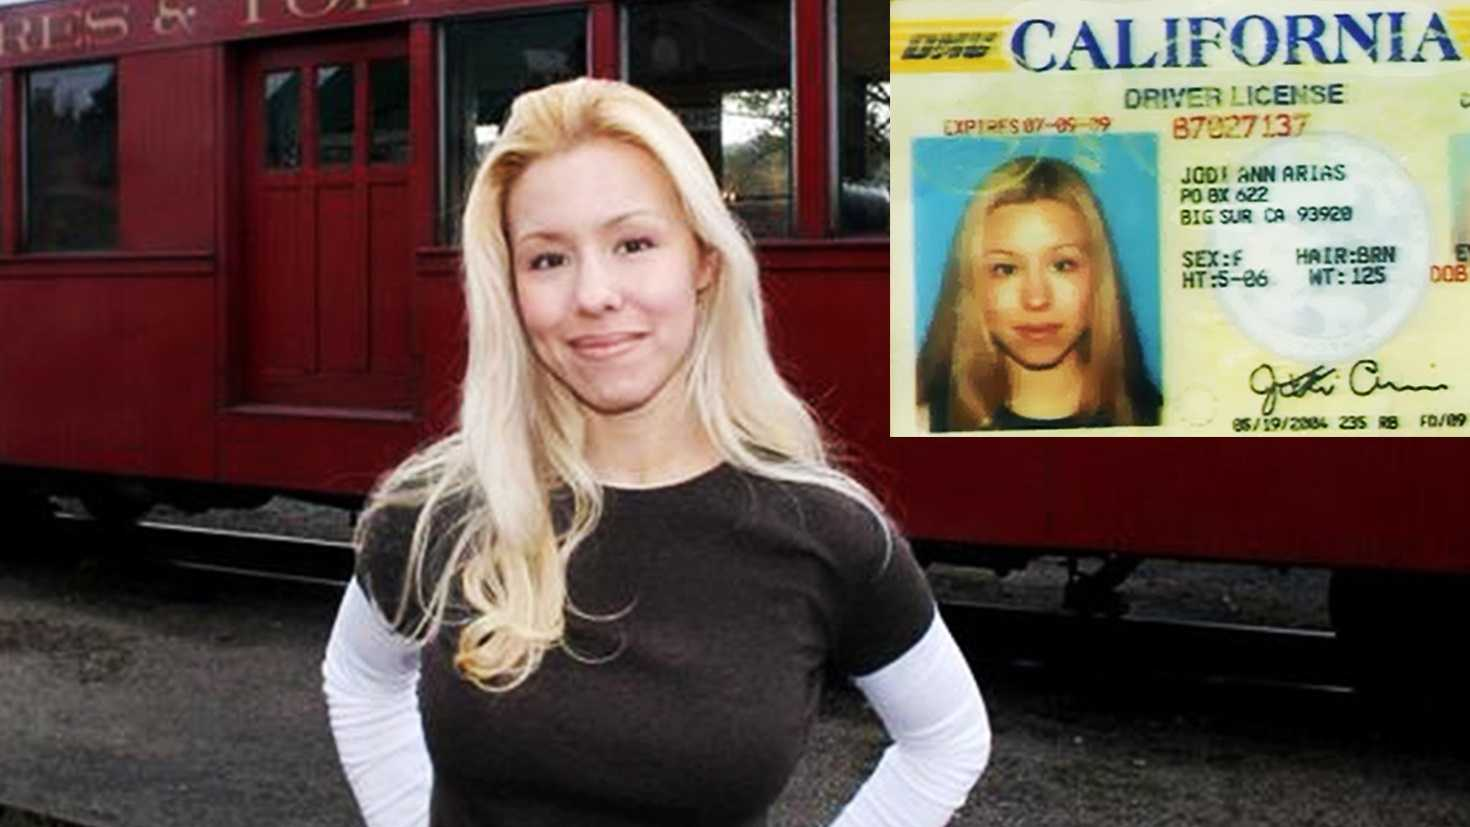 Jodi Ann Arias is accused of murdering her ex-boyfriend, Travis Alexander.